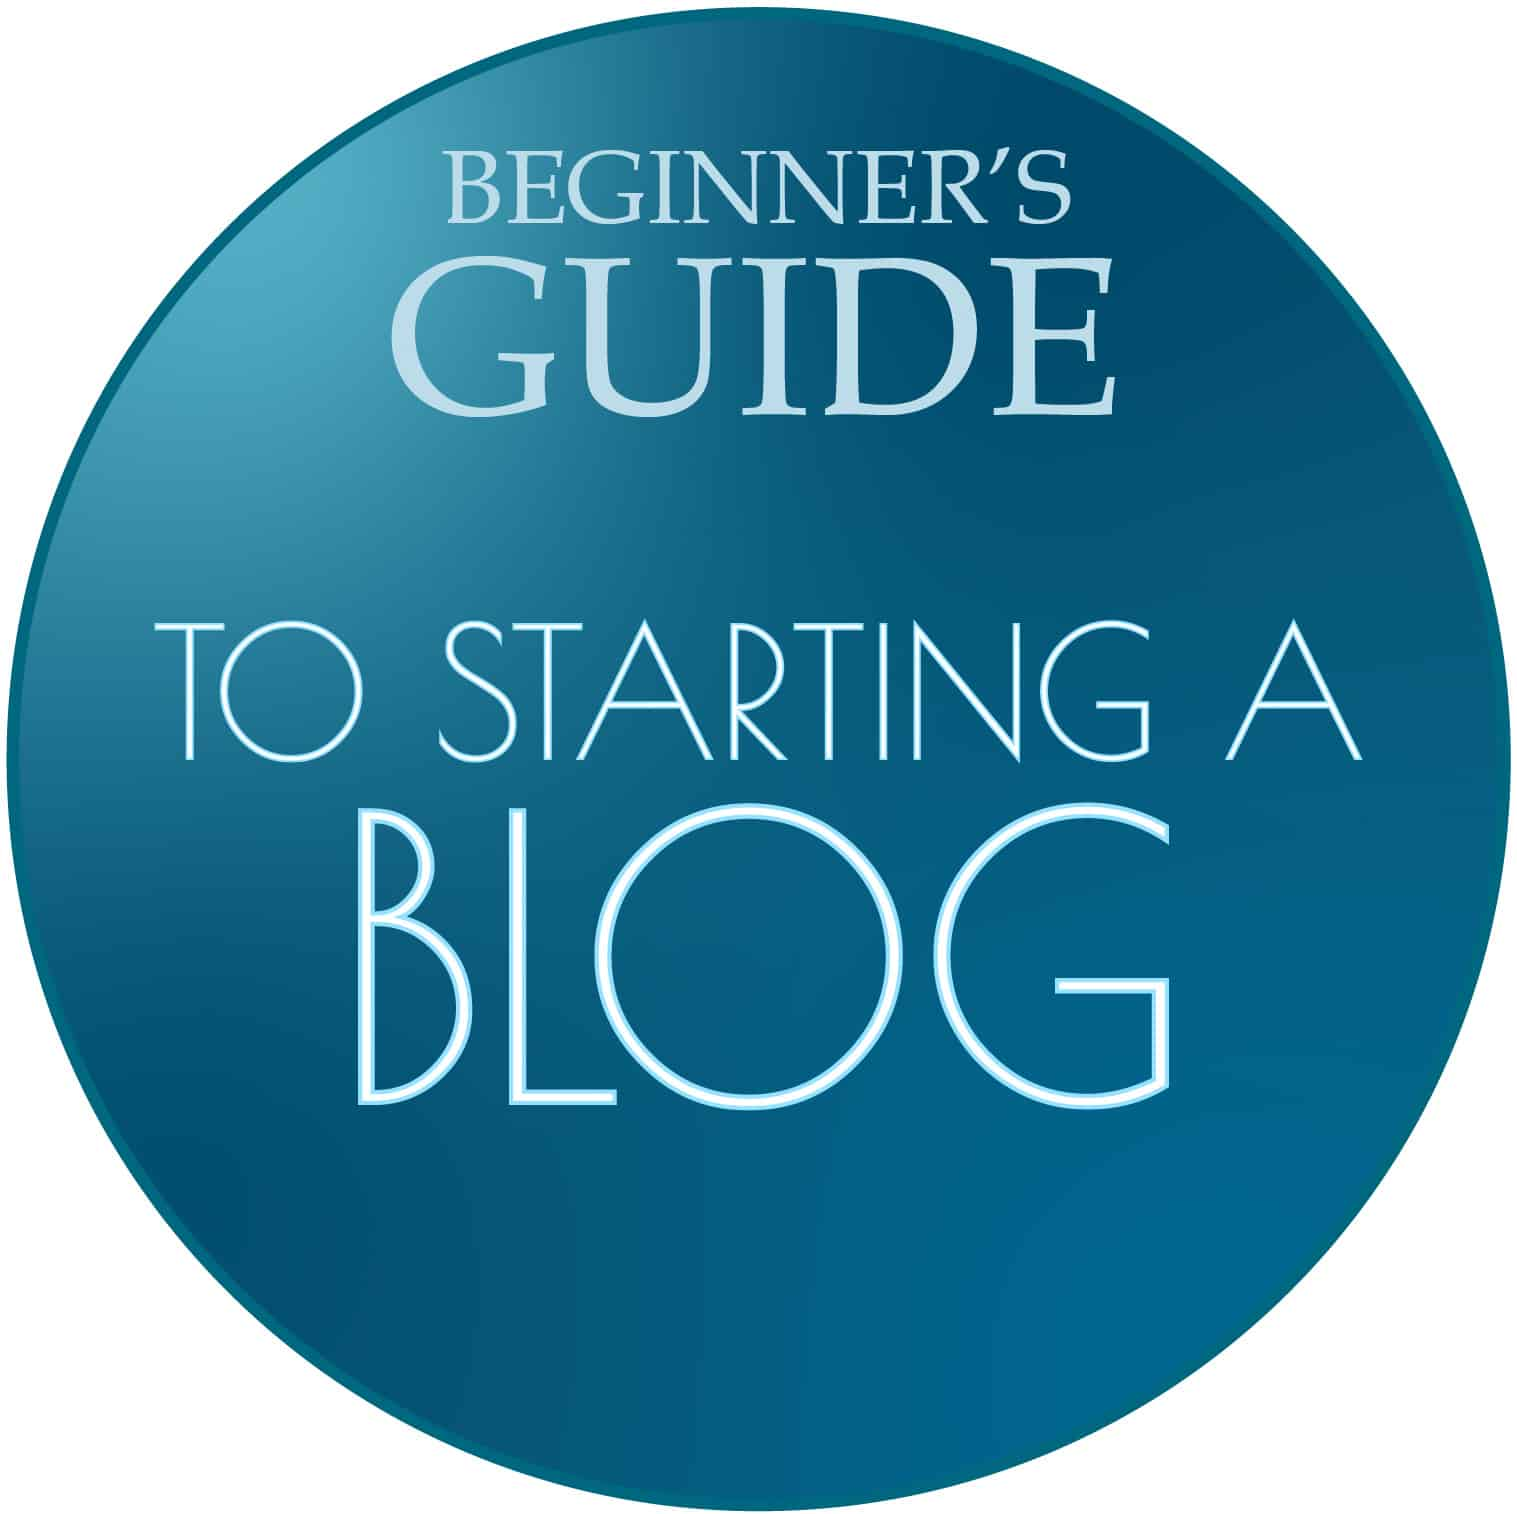 Beginners guide to starting a blog